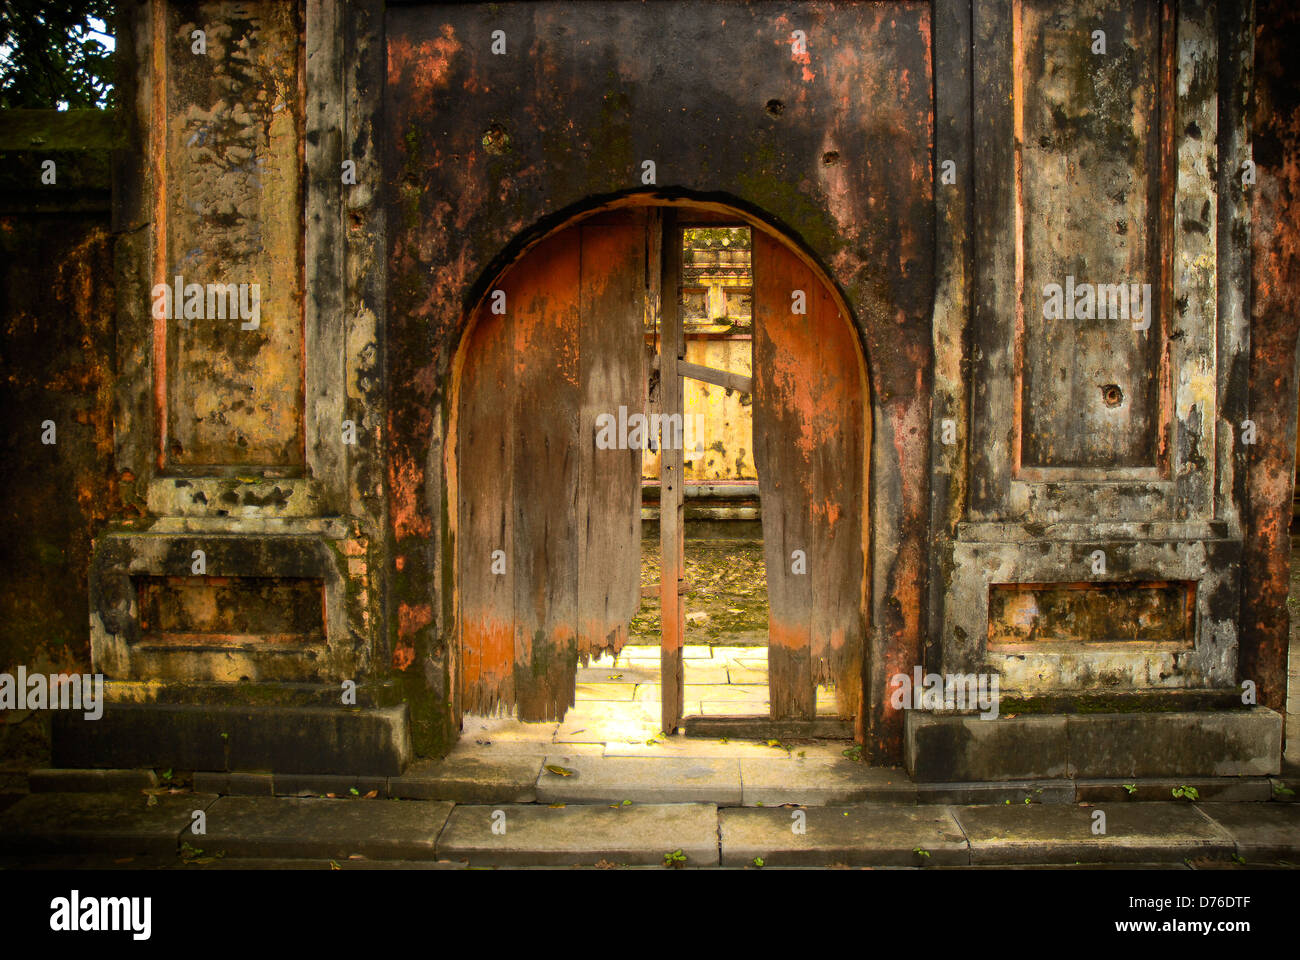 Dilapidated Entrance - Stock Image